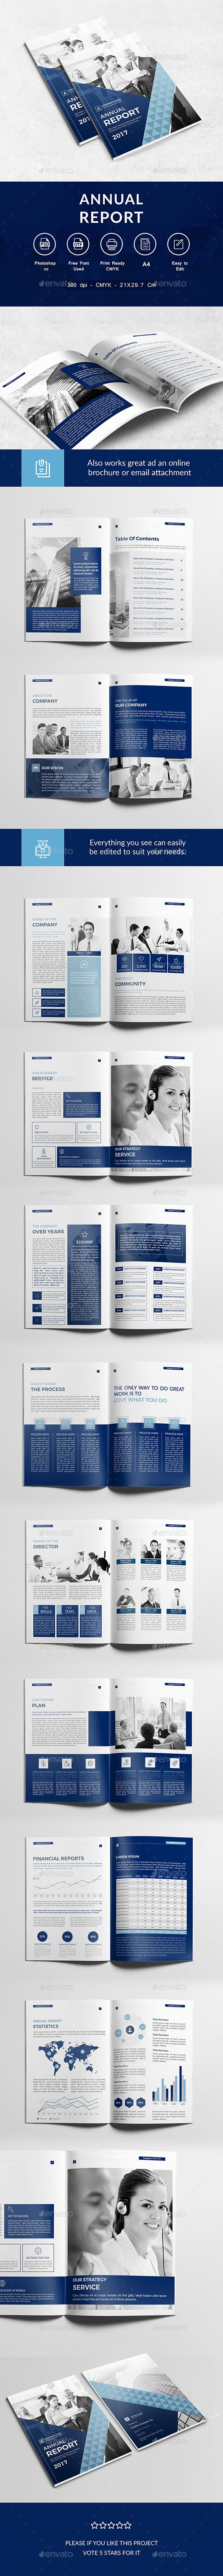 Buy Annual Report Template by AlfaresIT on